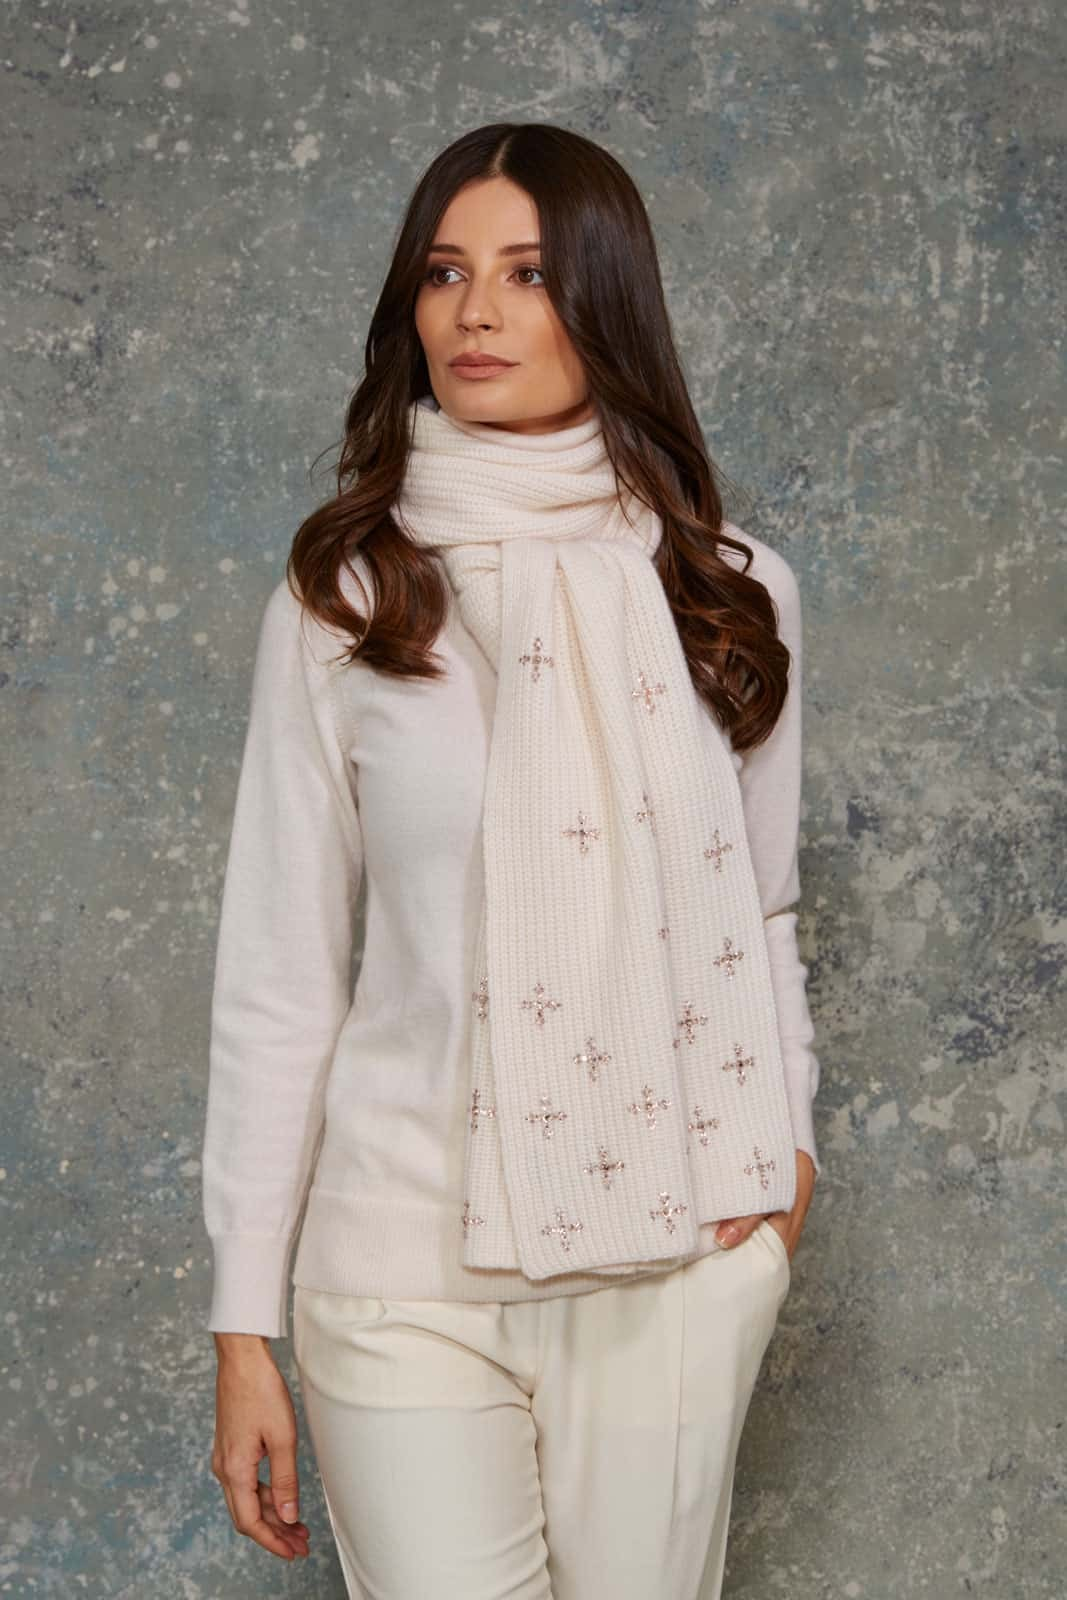 Winter White Scarf With Diamond Dazzle Scatter